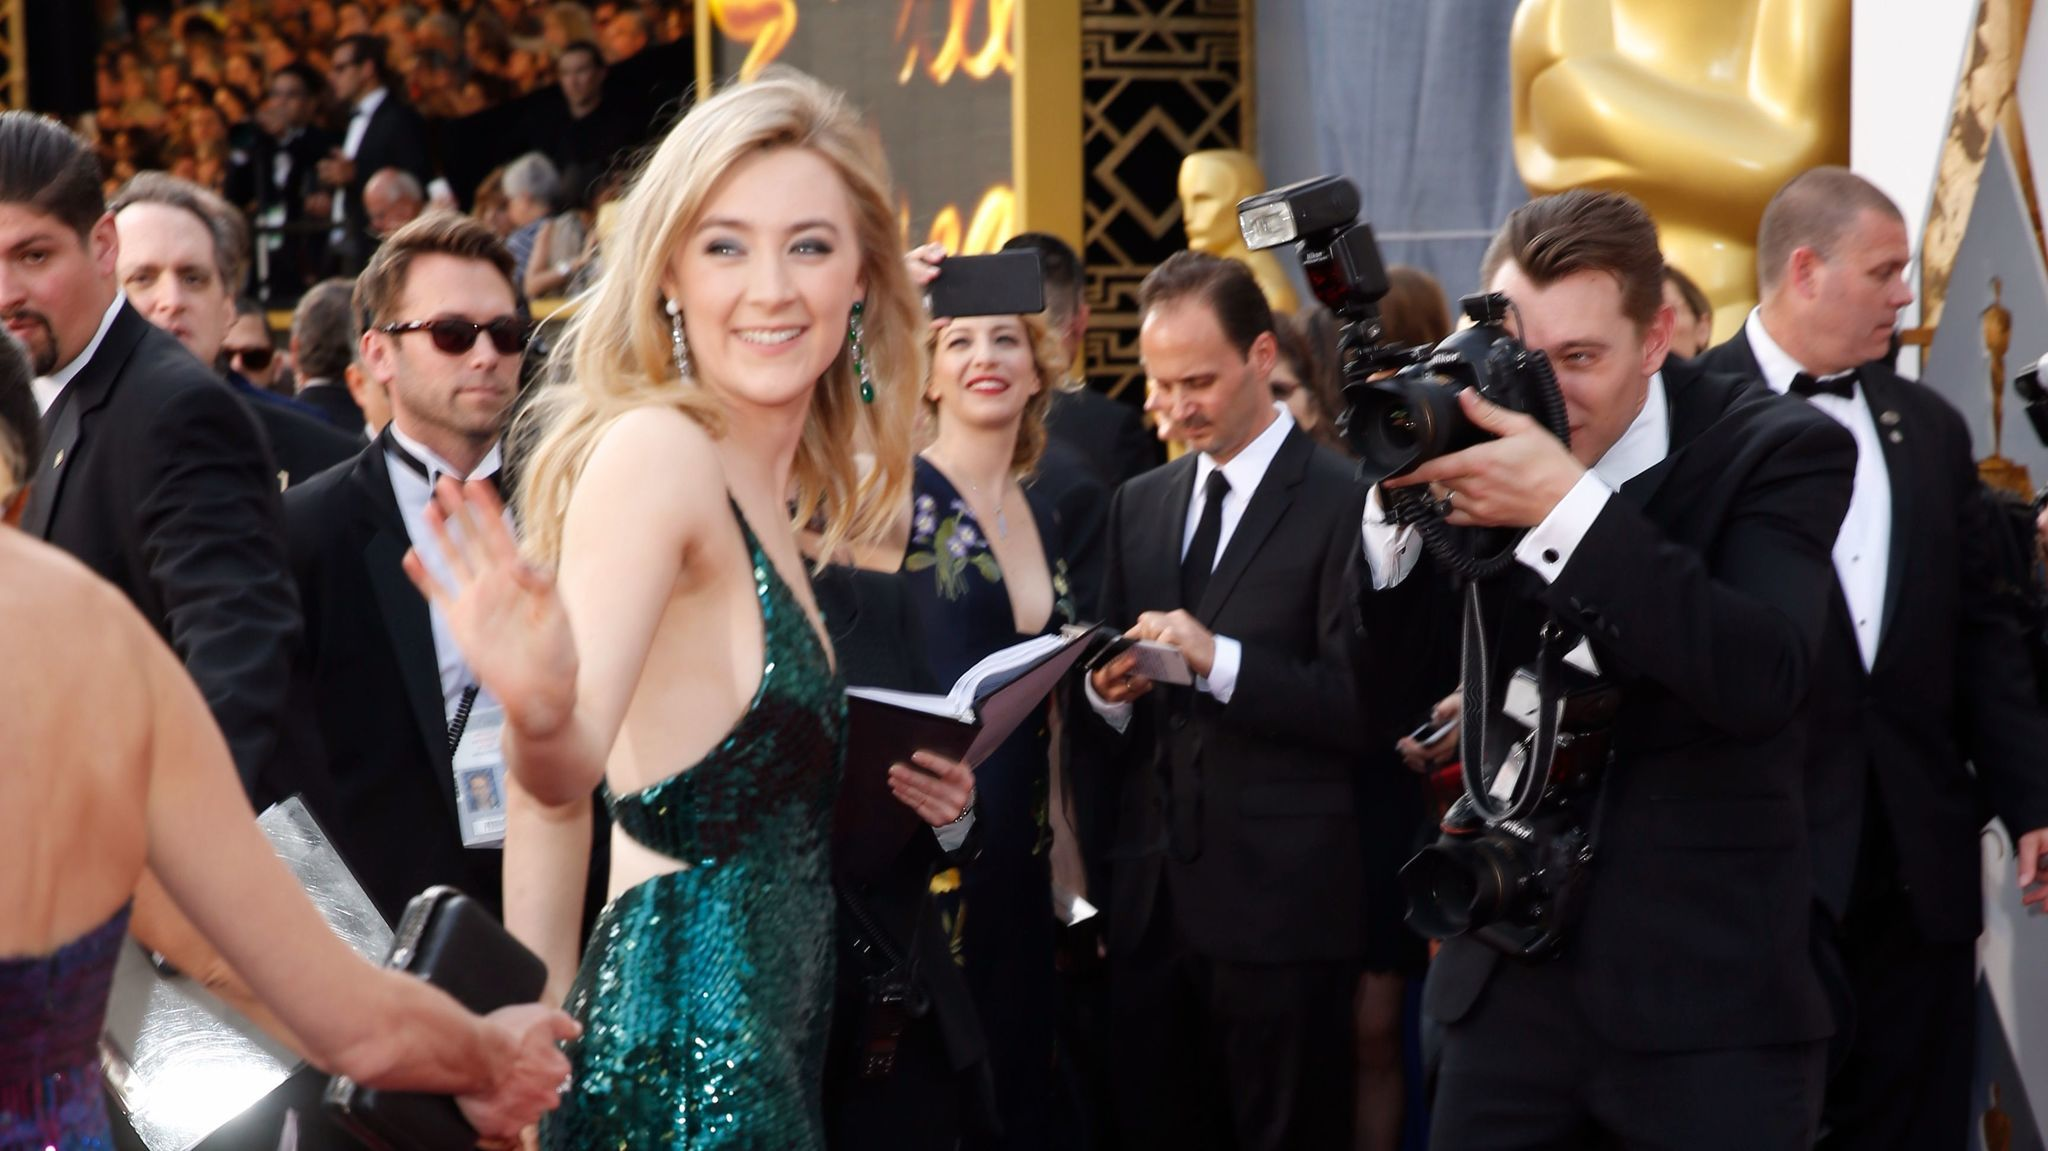 Ronan poses at the Oscars in 2016, where she was nominated for her lead performance in